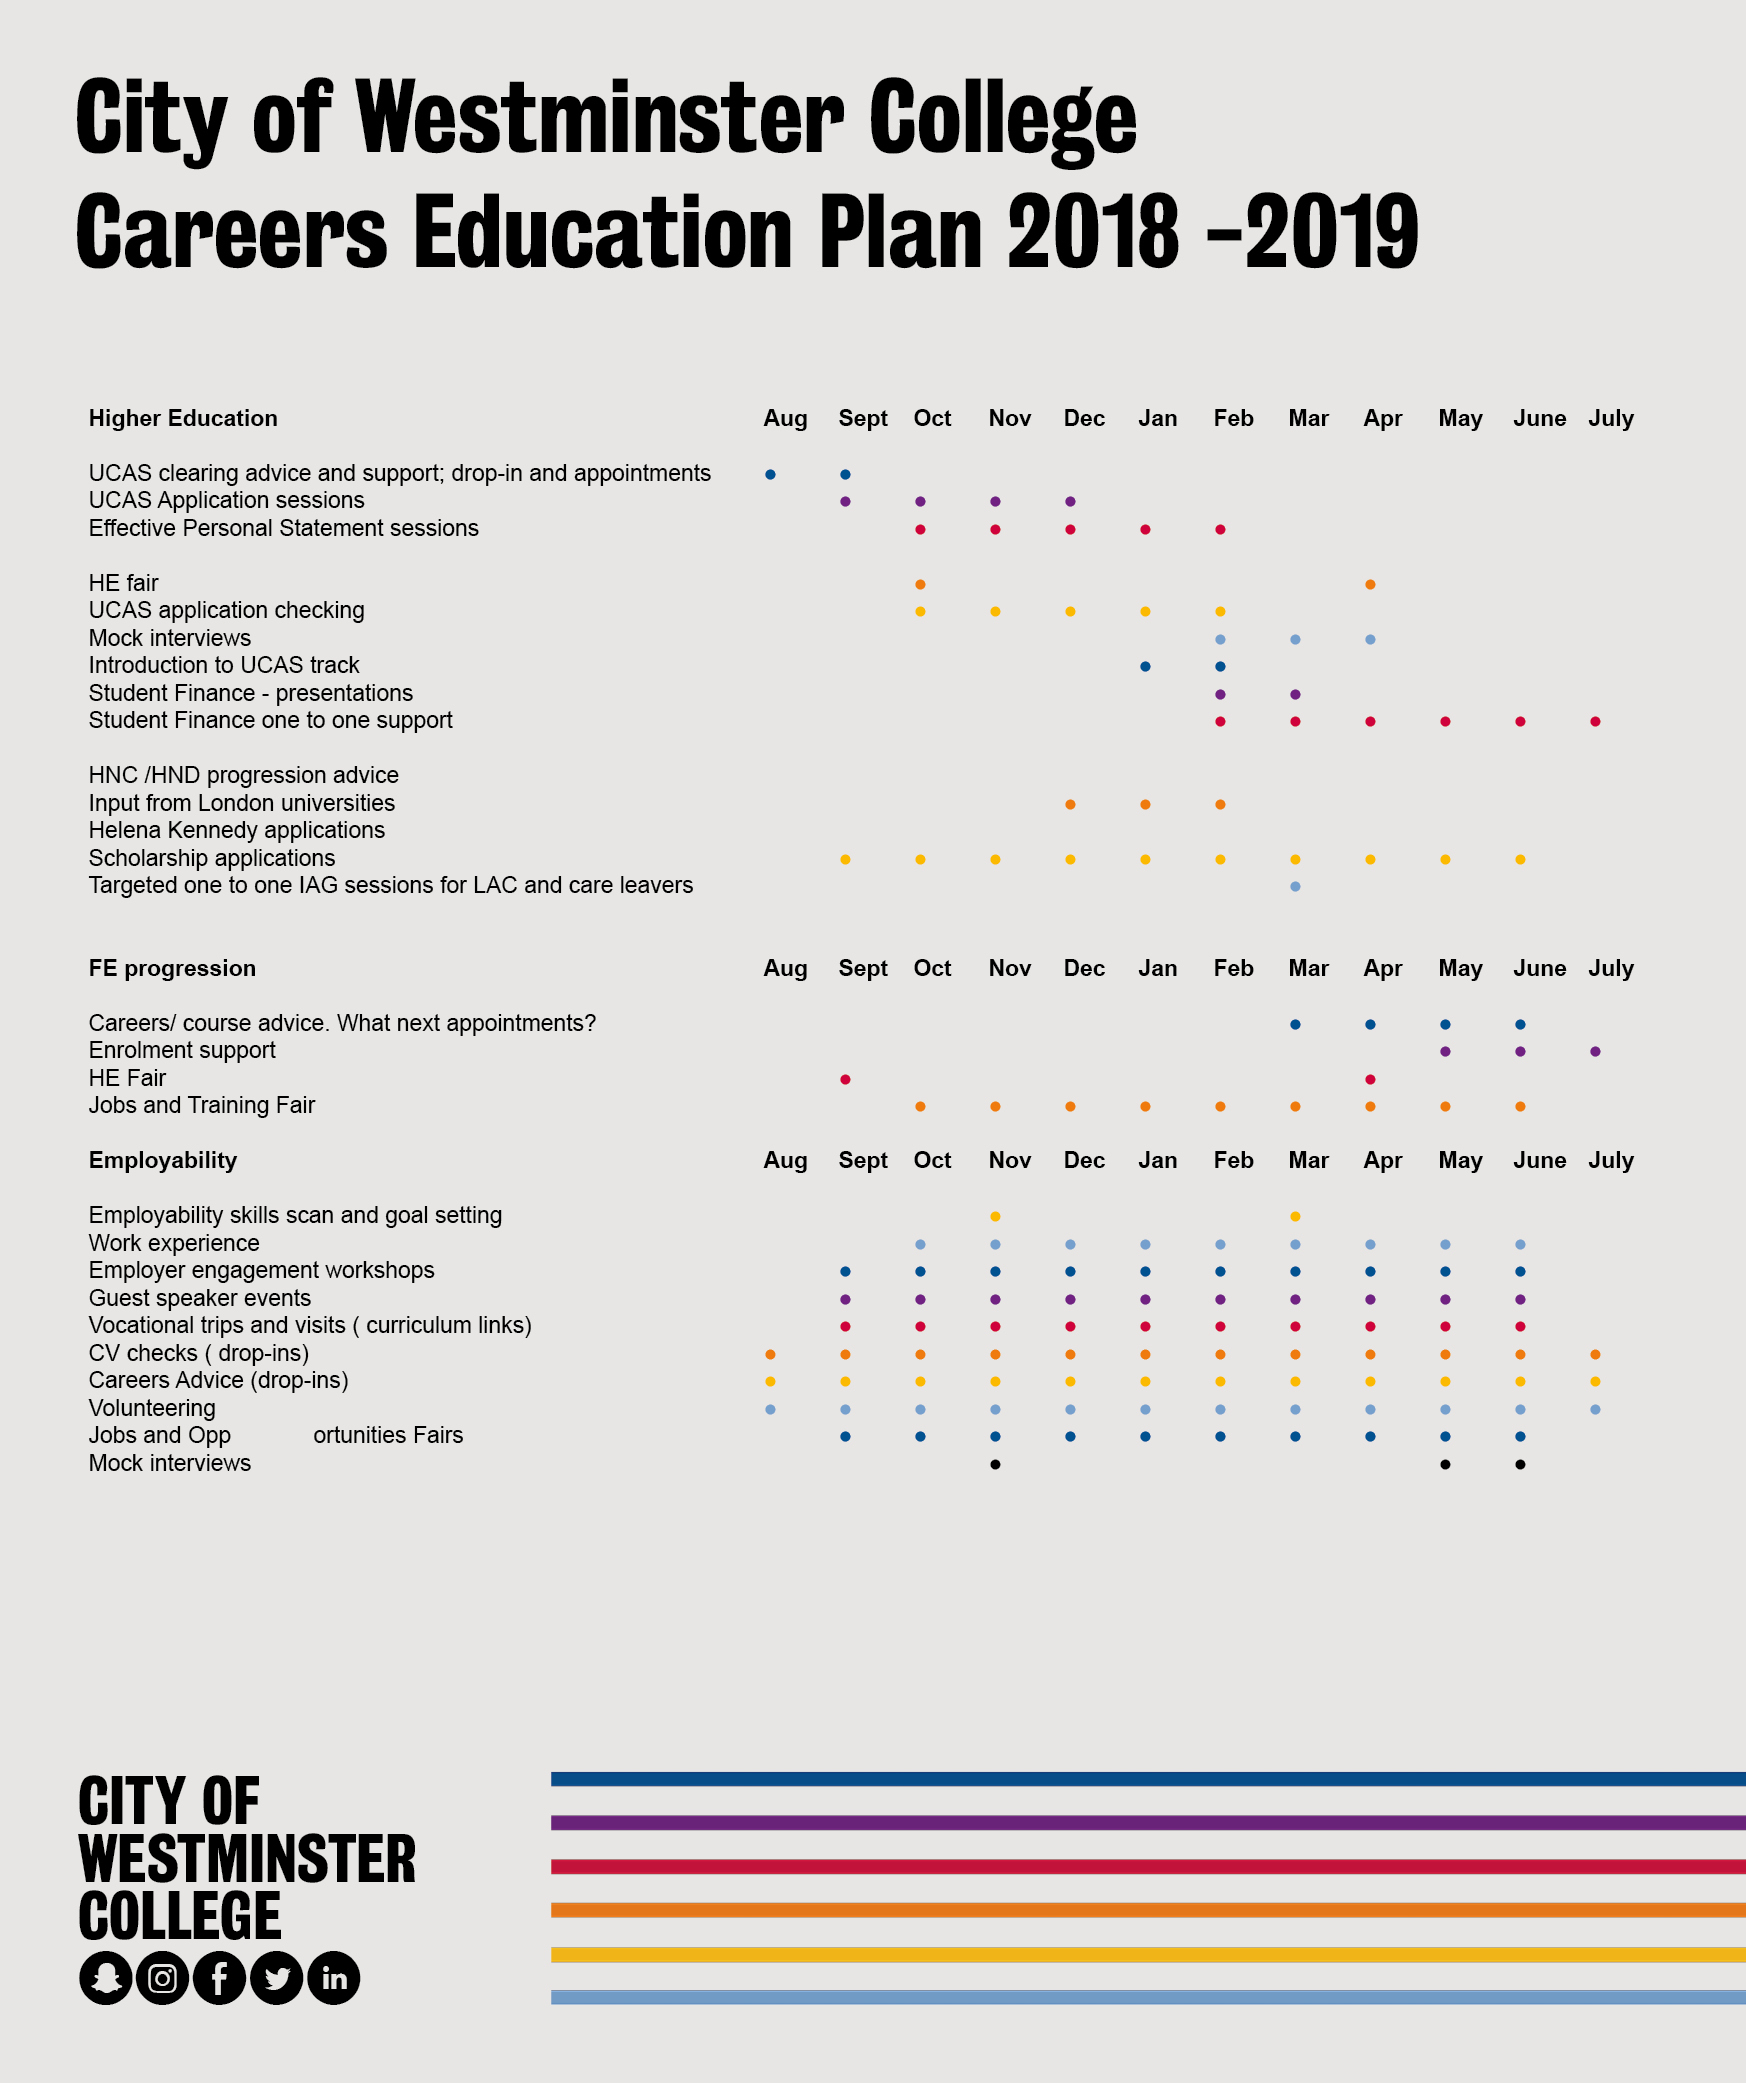 2018-07-20 Careers Education Plan 2018 -2019